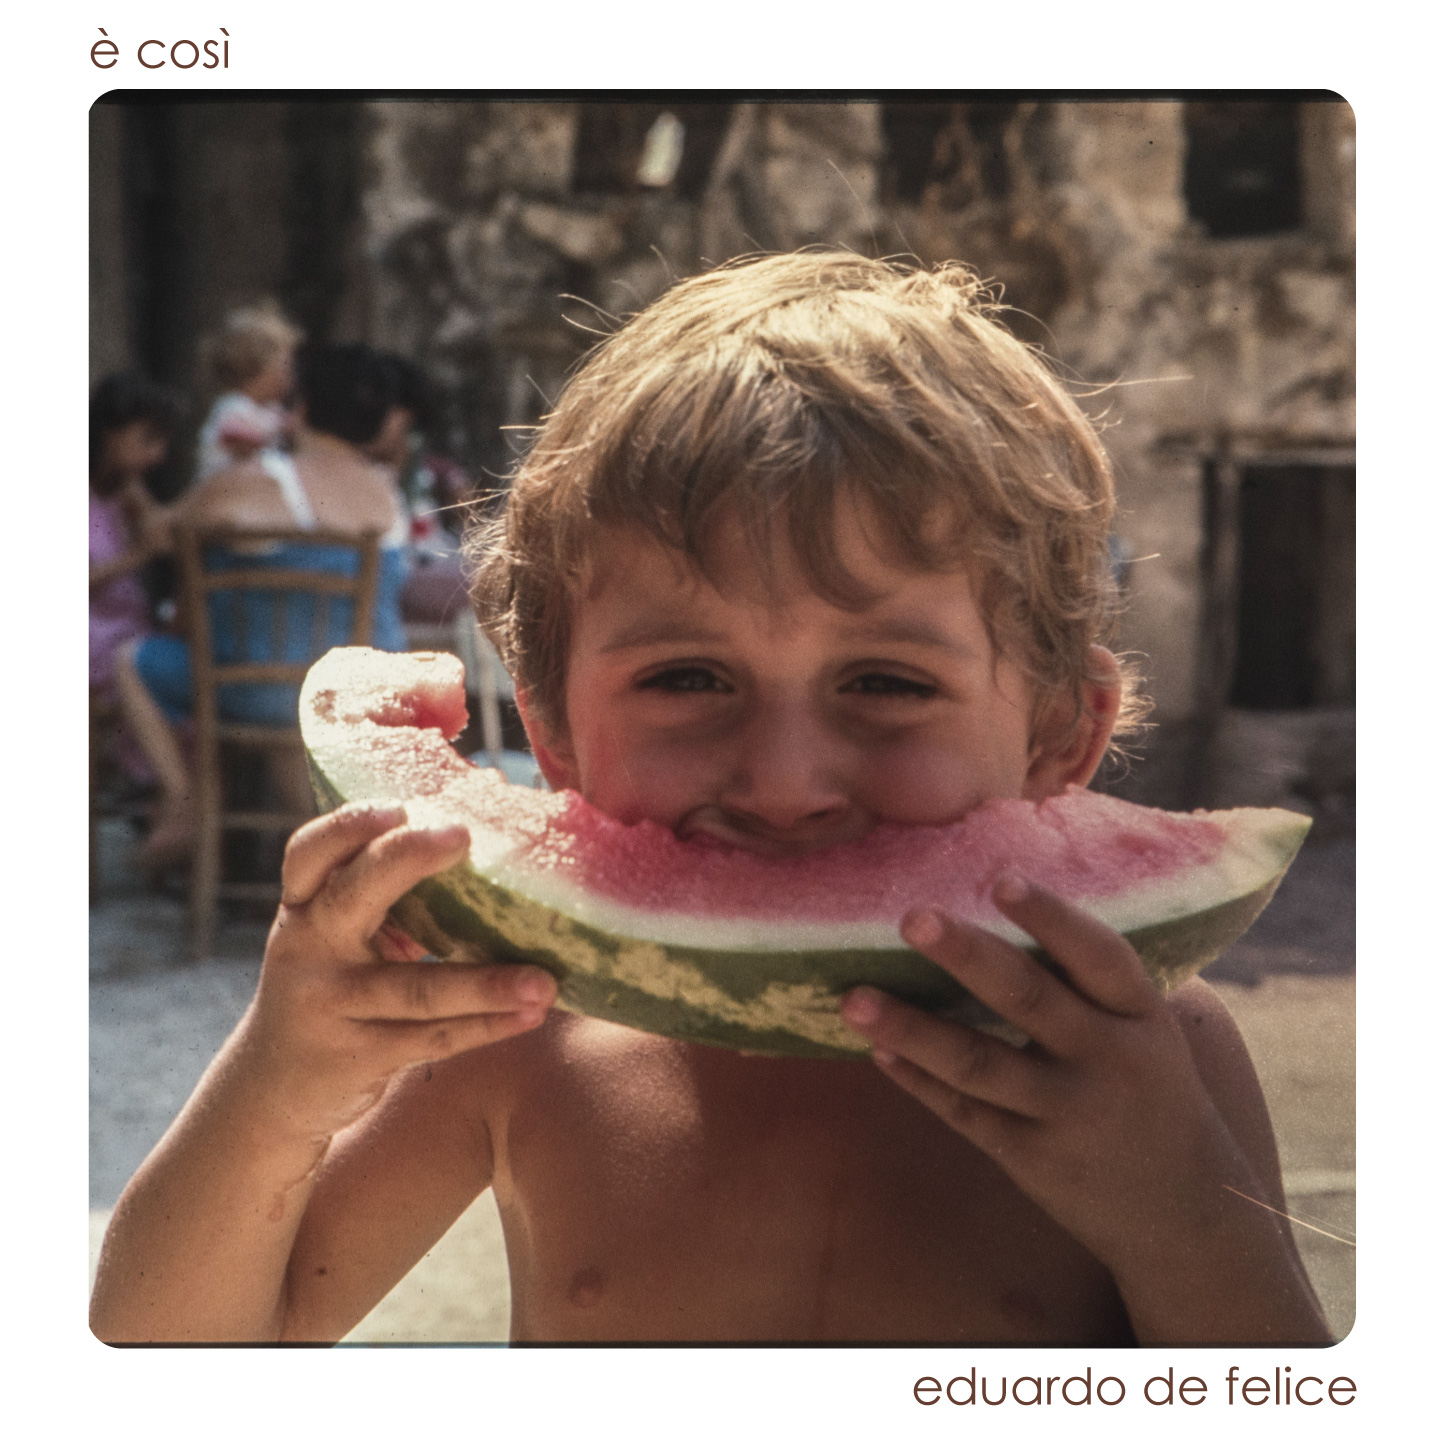 http://apogeorecords.it/wp-content/uploads/2018/02/eduardo-de-felice-02.jpg